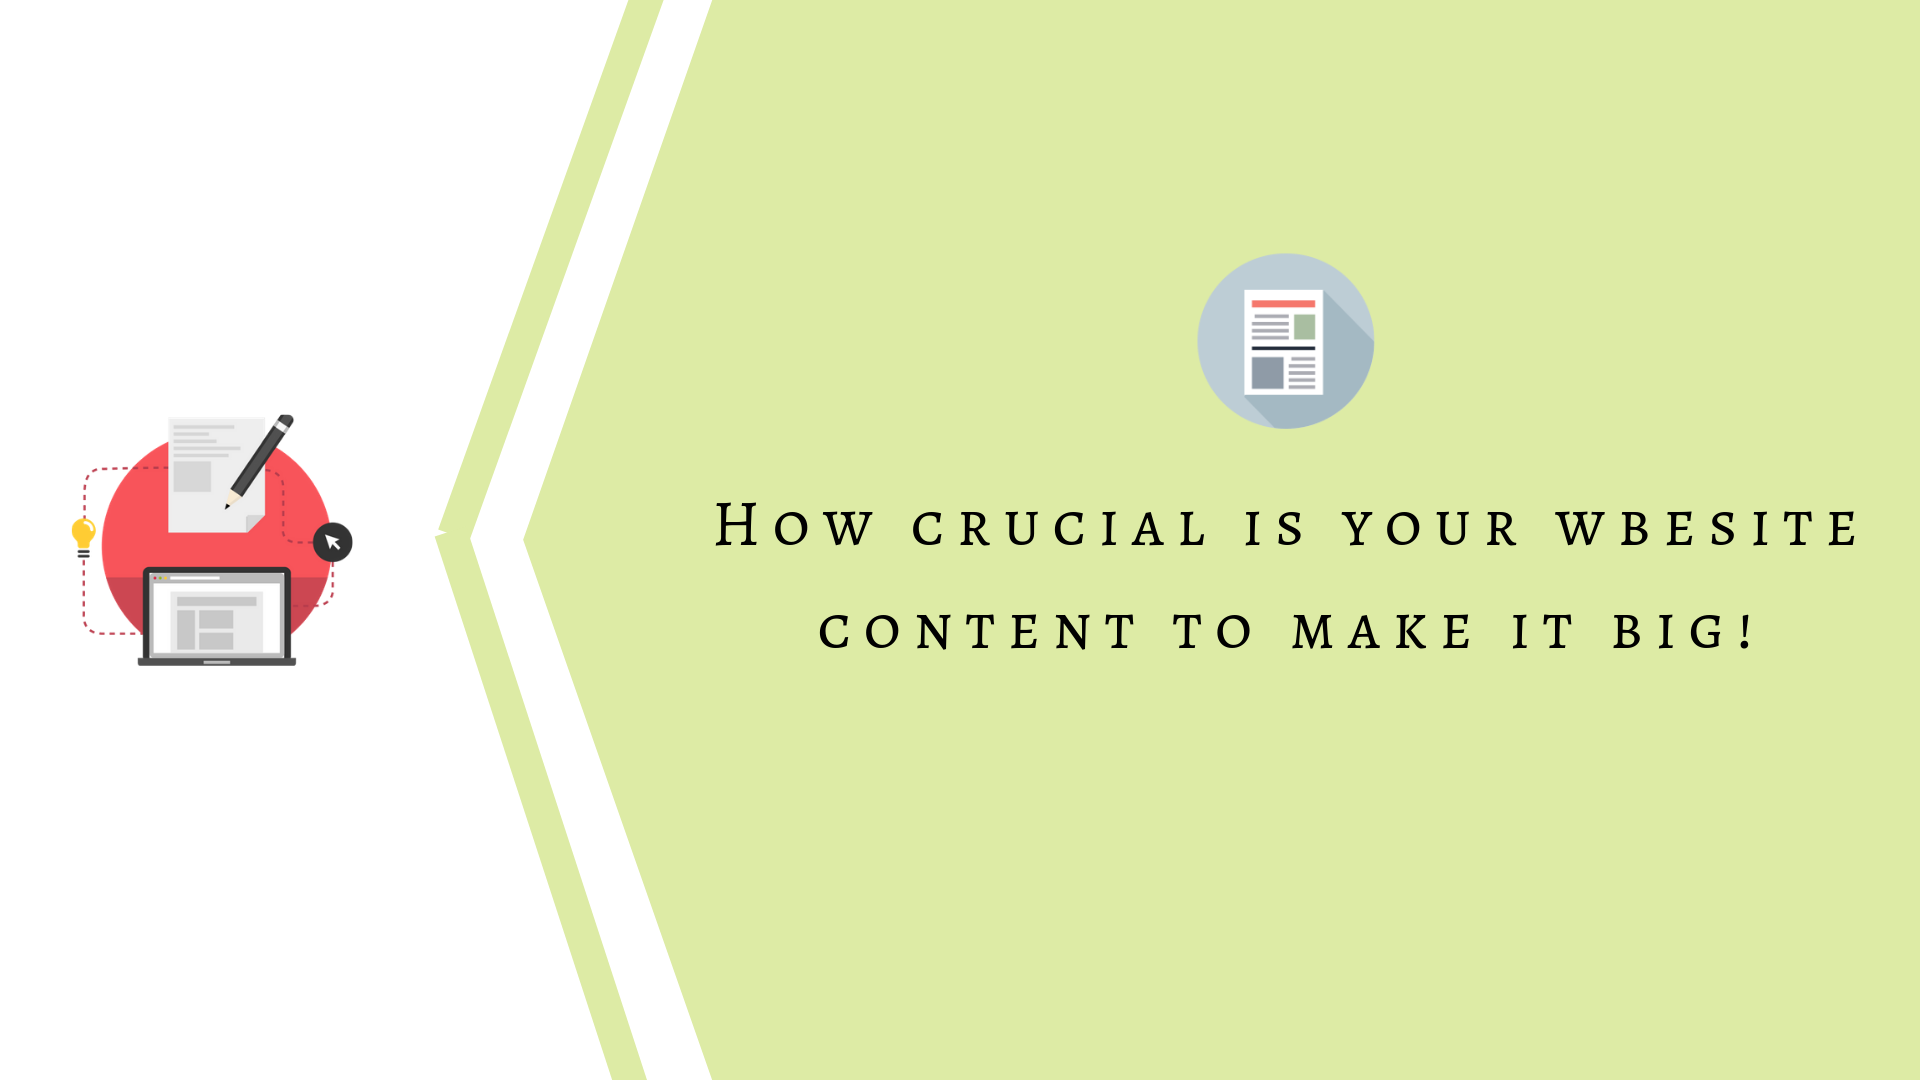 How Crucial is Your Website Content to Make it Big!